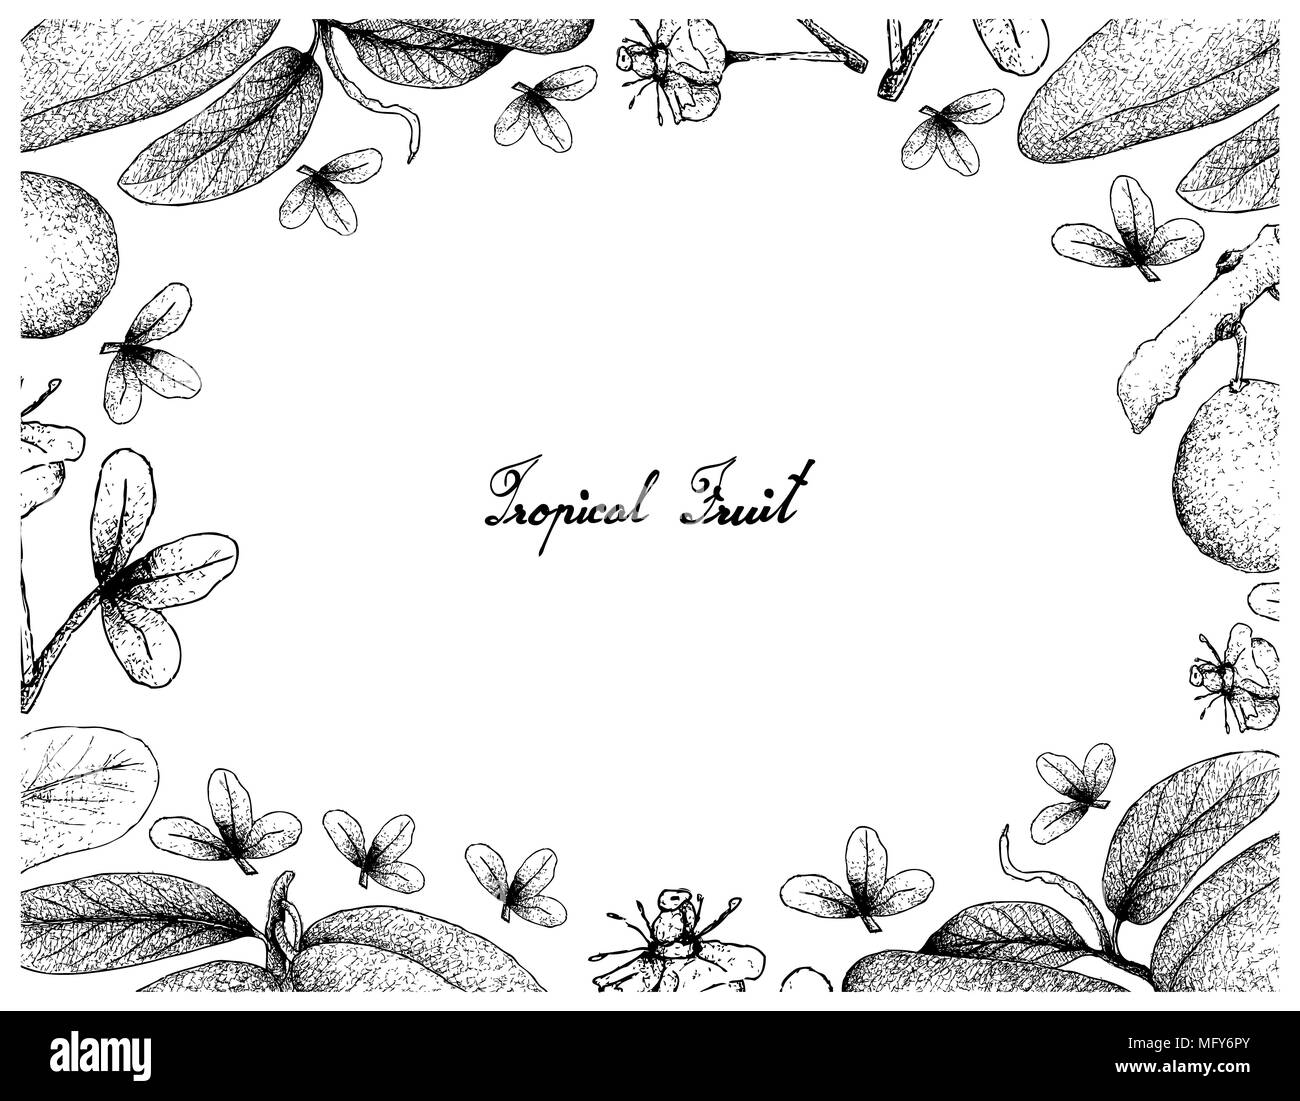 Tropical Fruits Illustration Frame Of Hand Drawn Sketch African